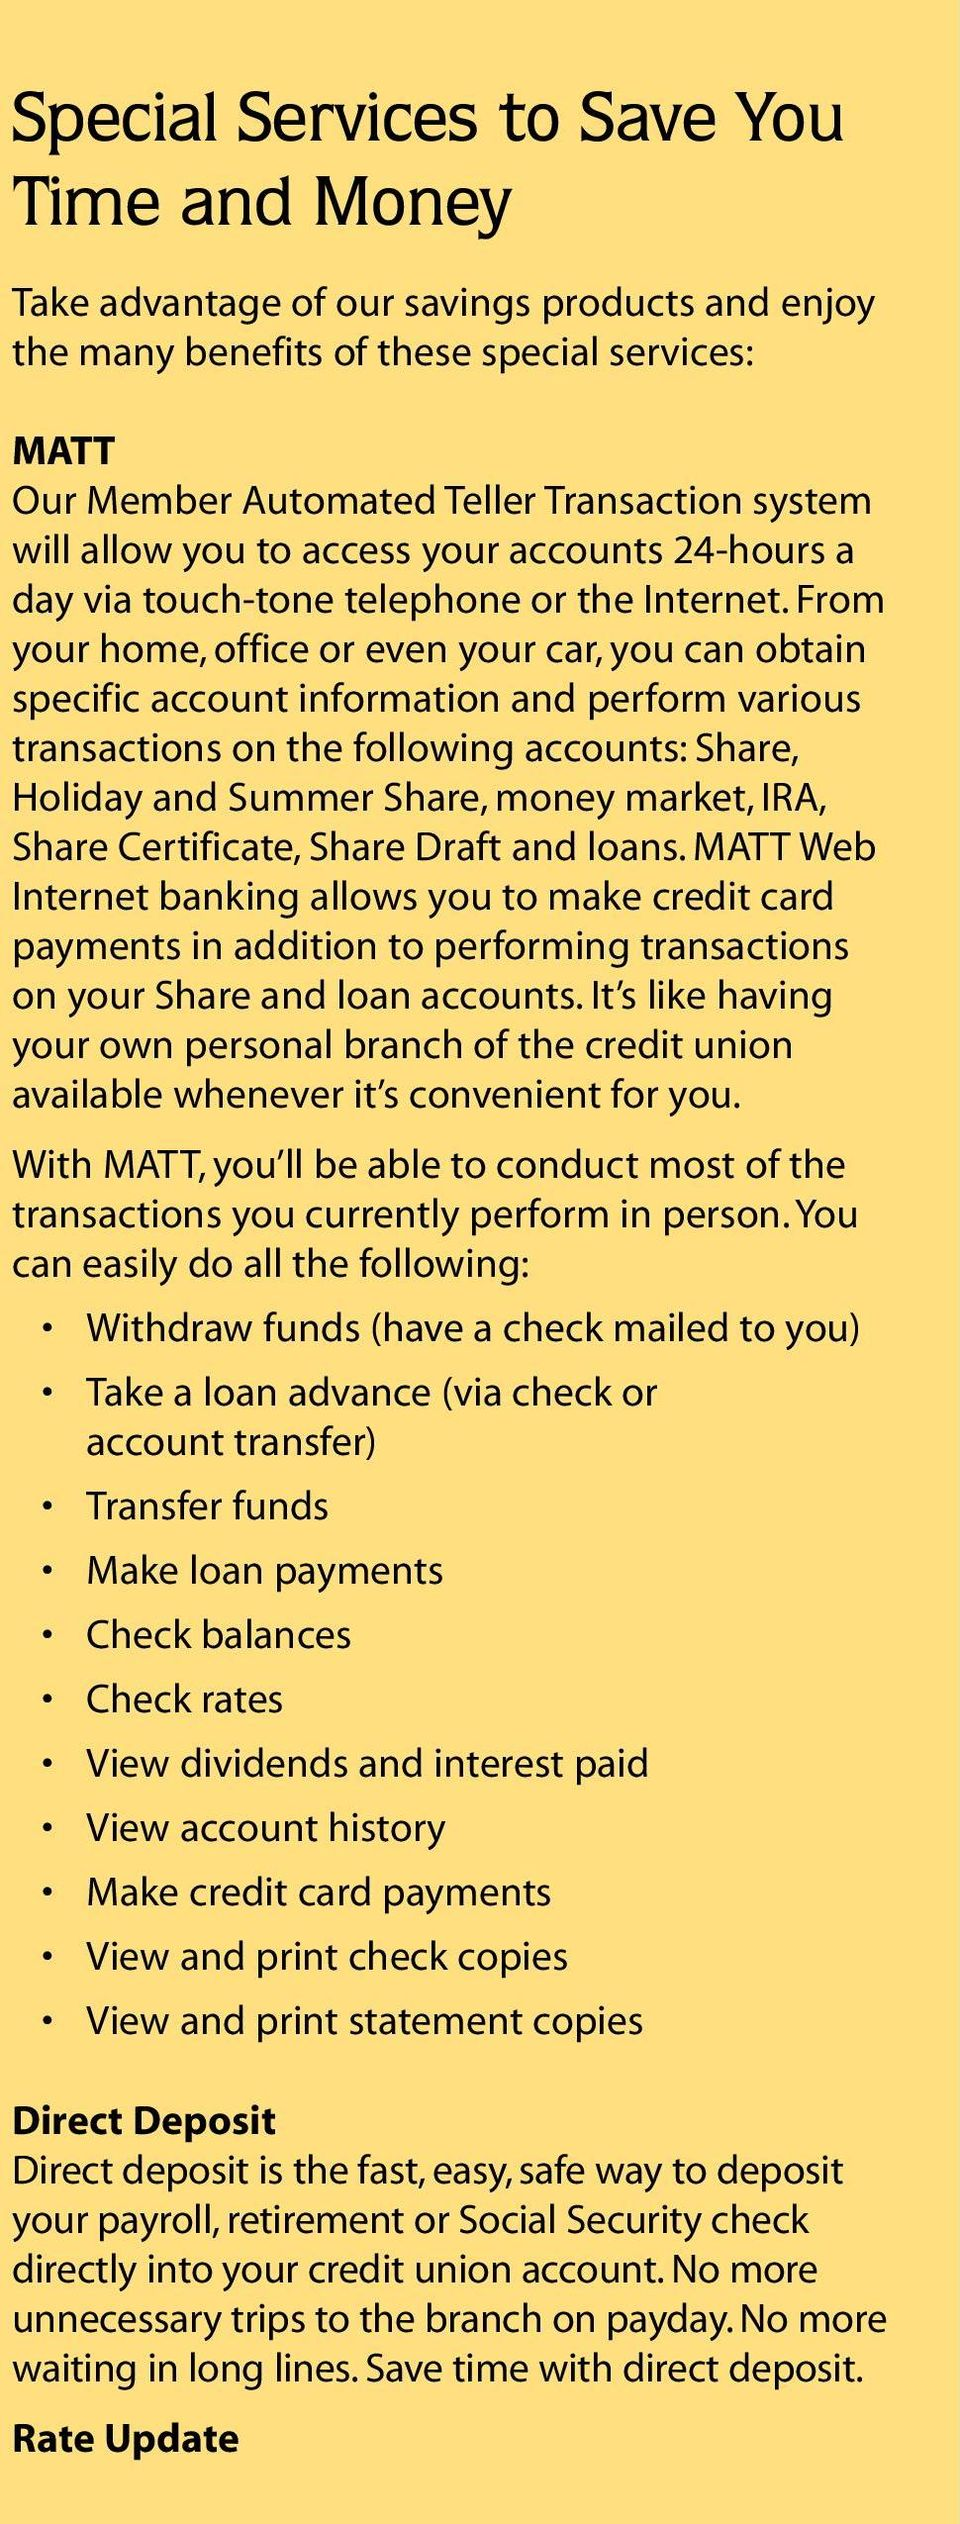 From your home, office or even your car, you can obtain specific account information and perform various transactions on the following accounts: Share, Holiday and Summer Share, money market, IRA,